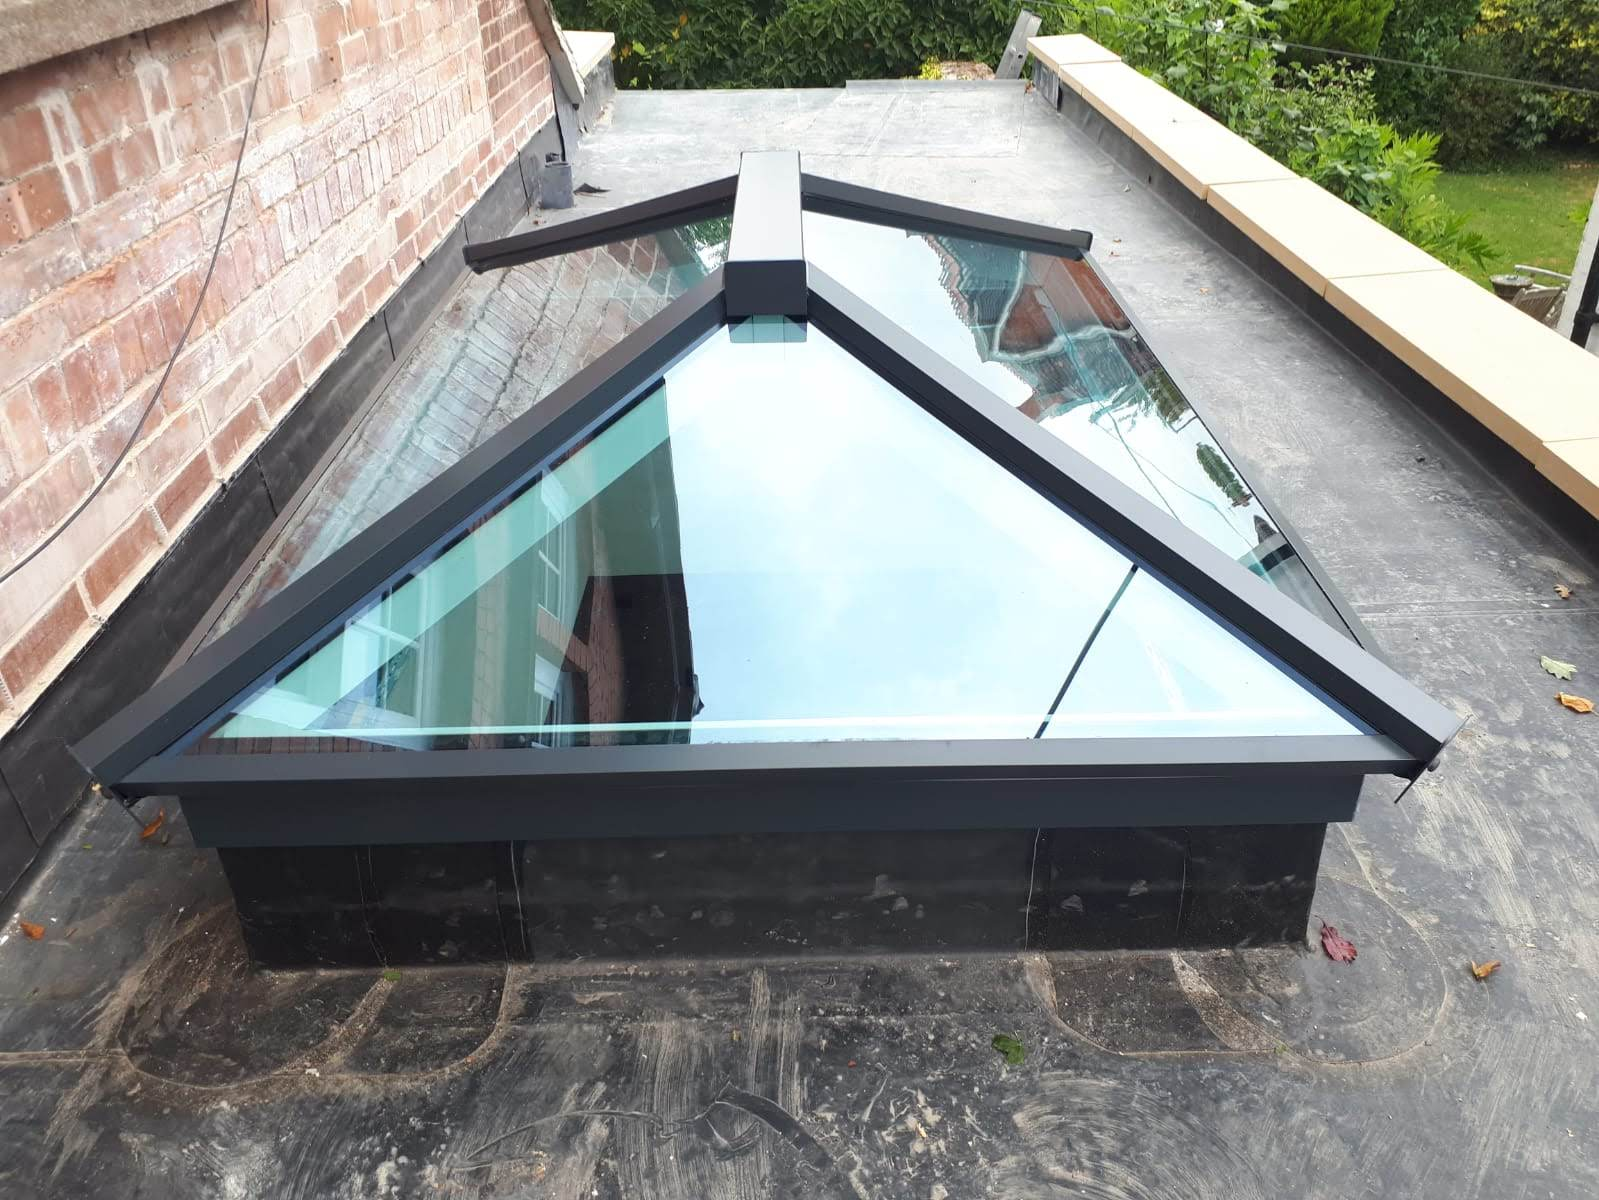 High angle image of a new roof skylight design.